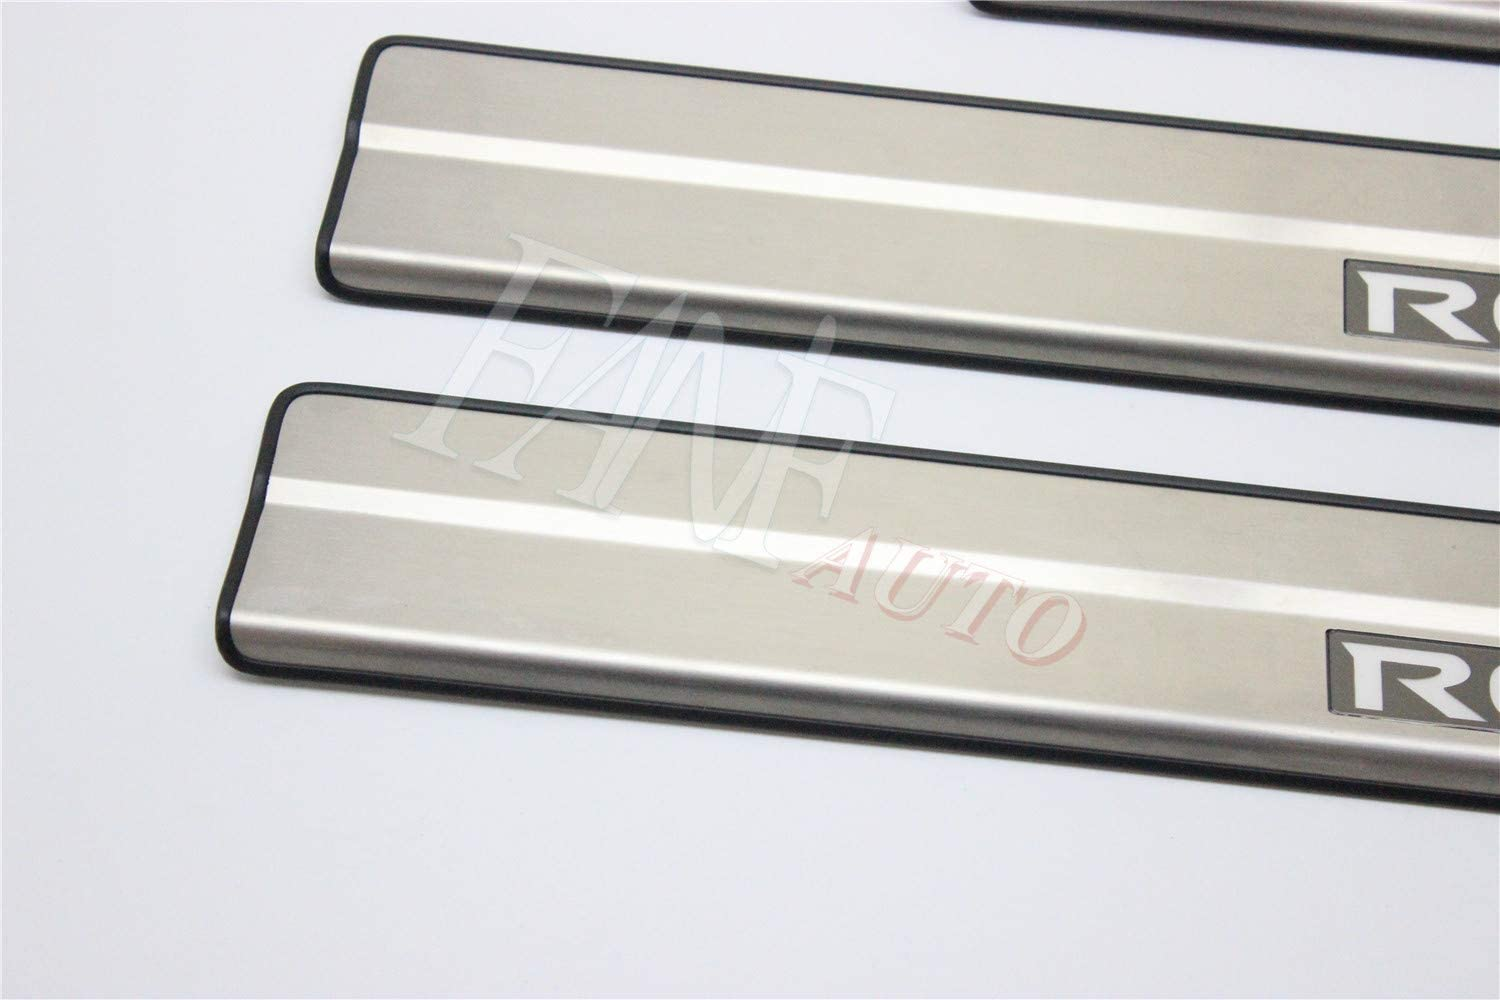 Led FANFAUTO Stainless Steel Door Sill Protector Trim Cover Entry Guard Scuff Plate for Nissan Rogue 2014-2018